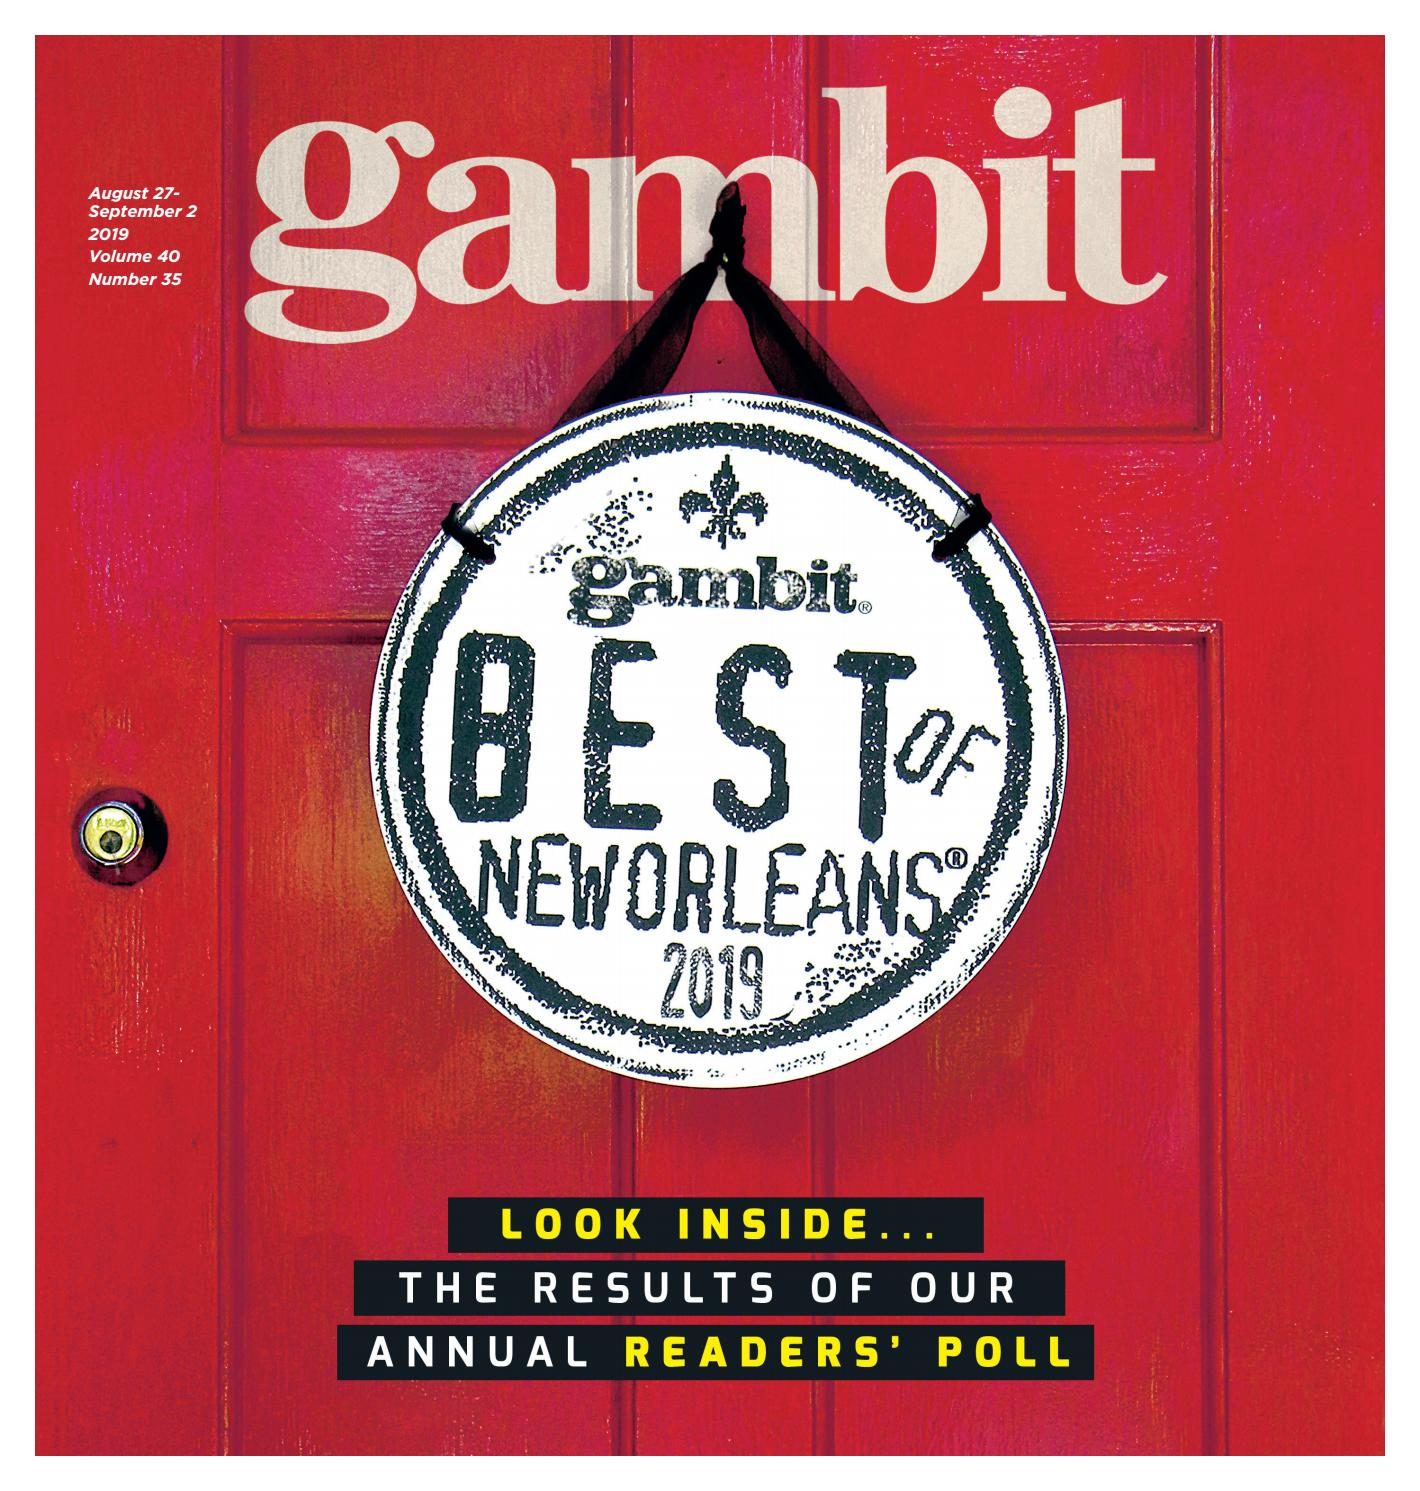 Gambit's Best of New Orleans 2019 by Gambit New Orleans - issuu